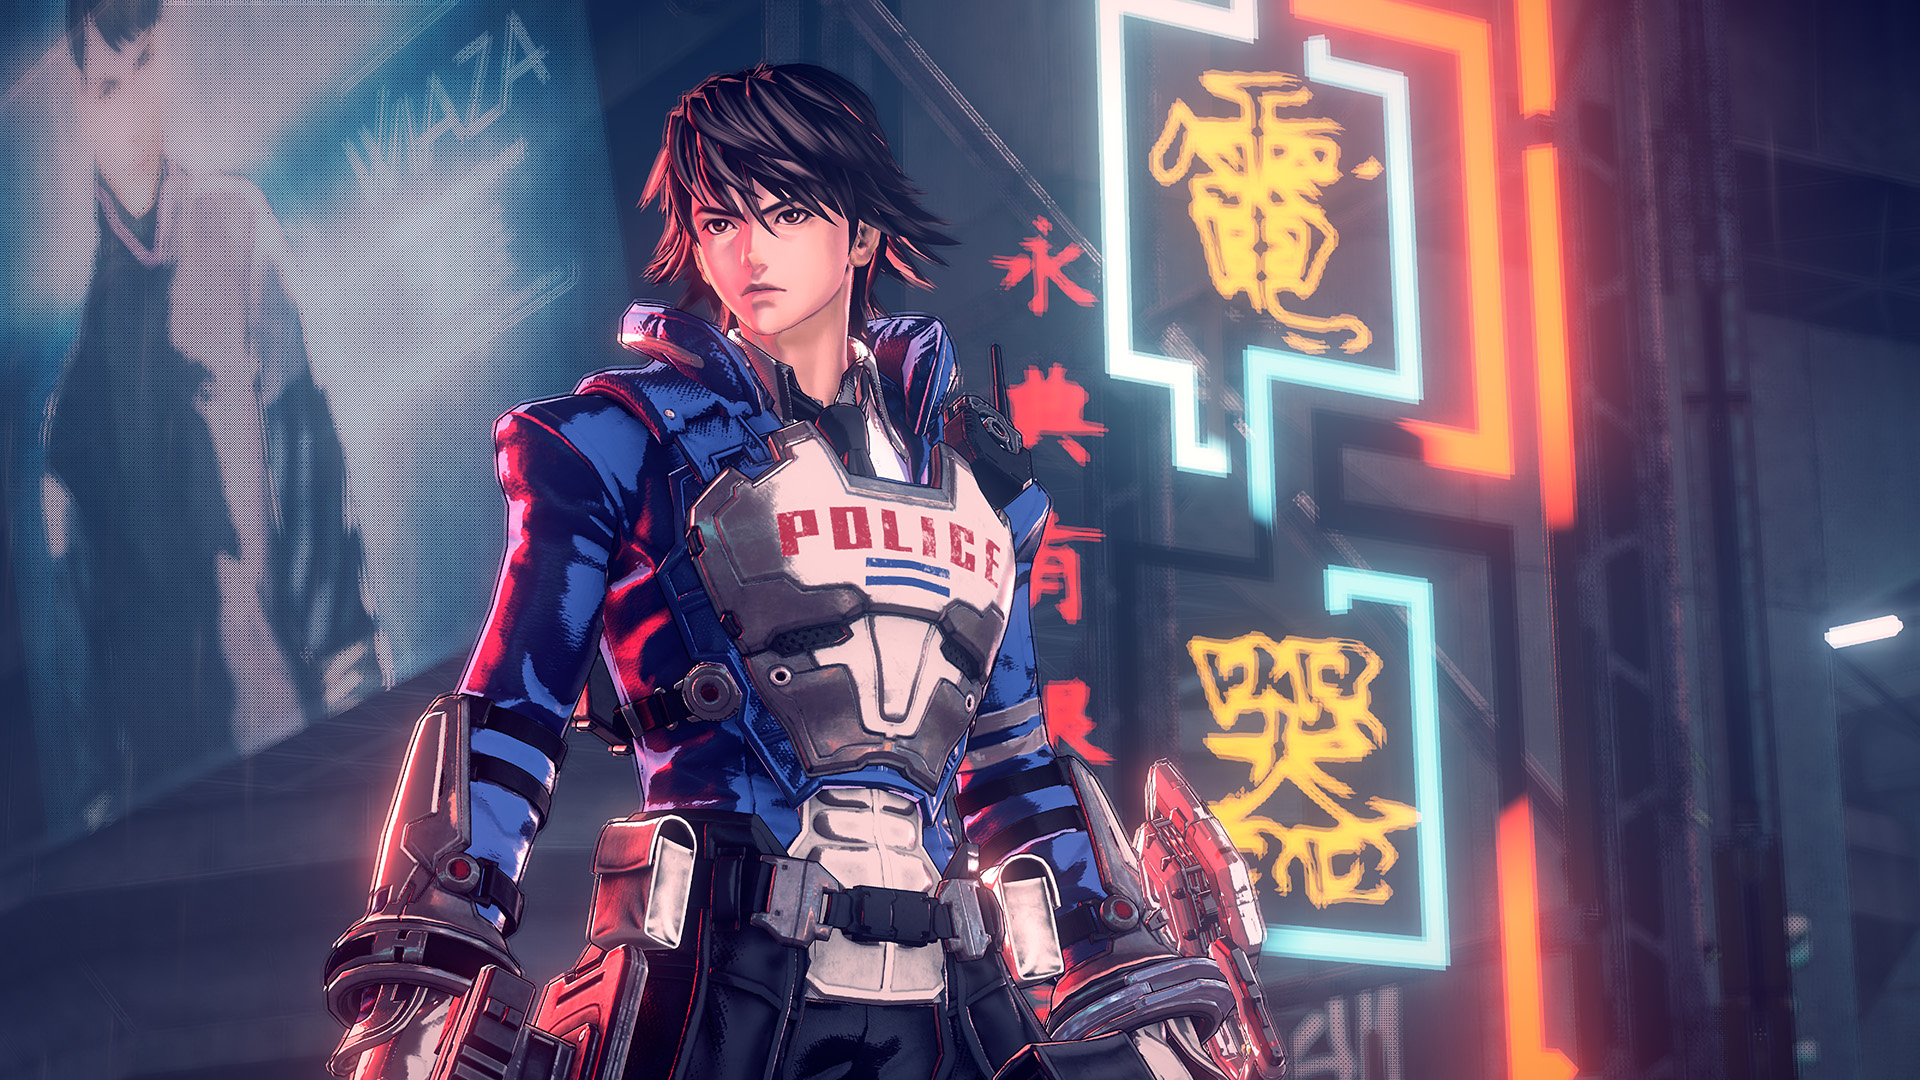 a police officer with Japanese characters on neon signs behind him